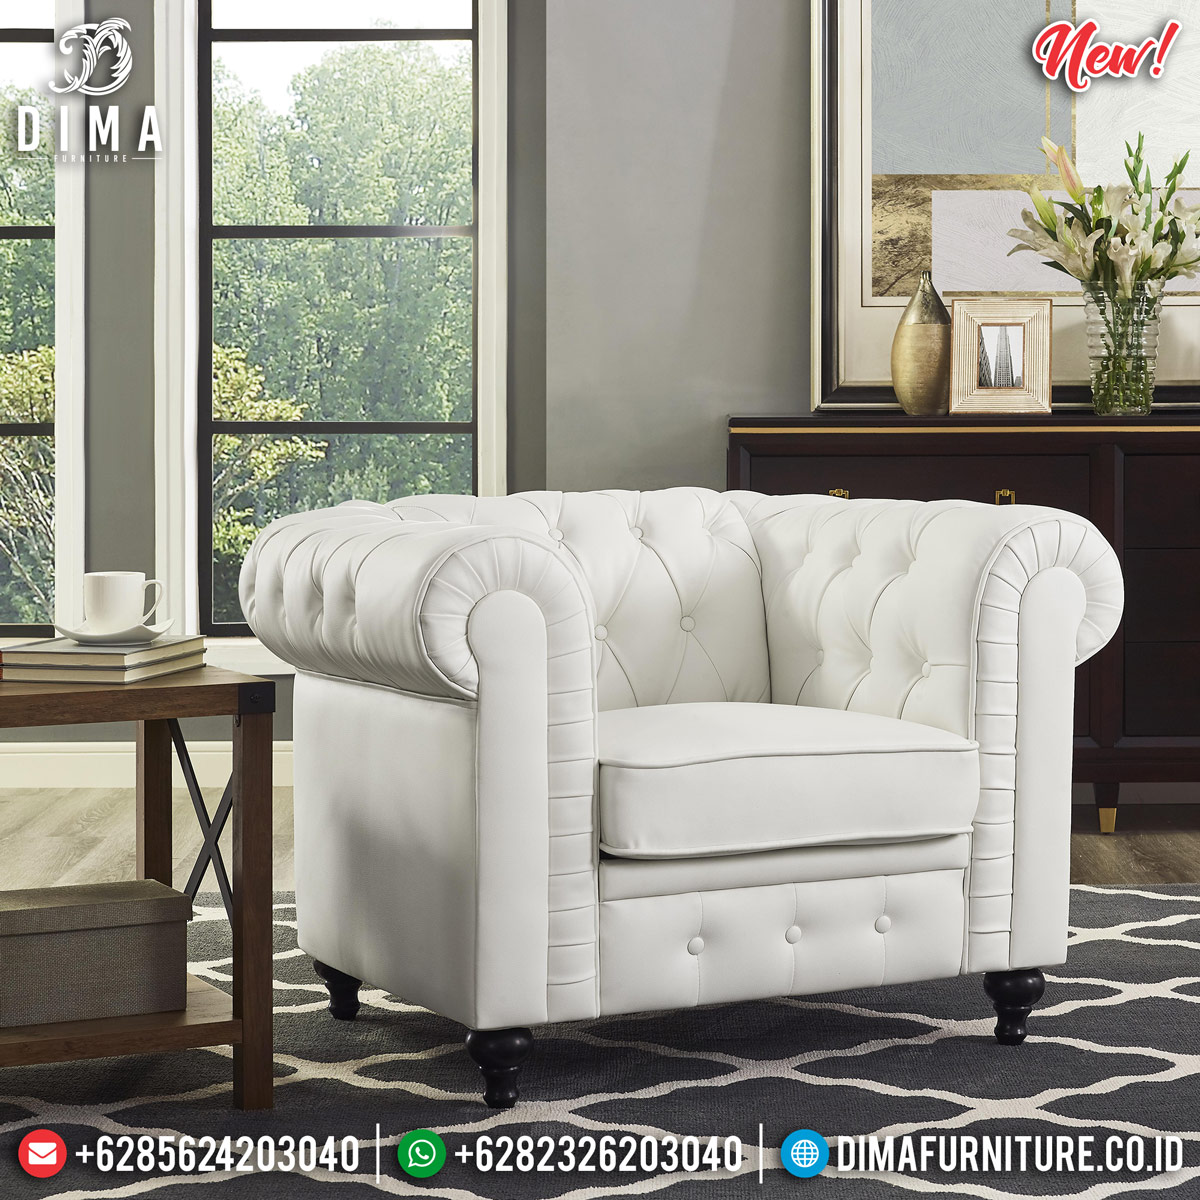 Jual Sofa Tamu Minimalis Chesterfield White Softly New Luxury Design MMJ-0815 Detail 2